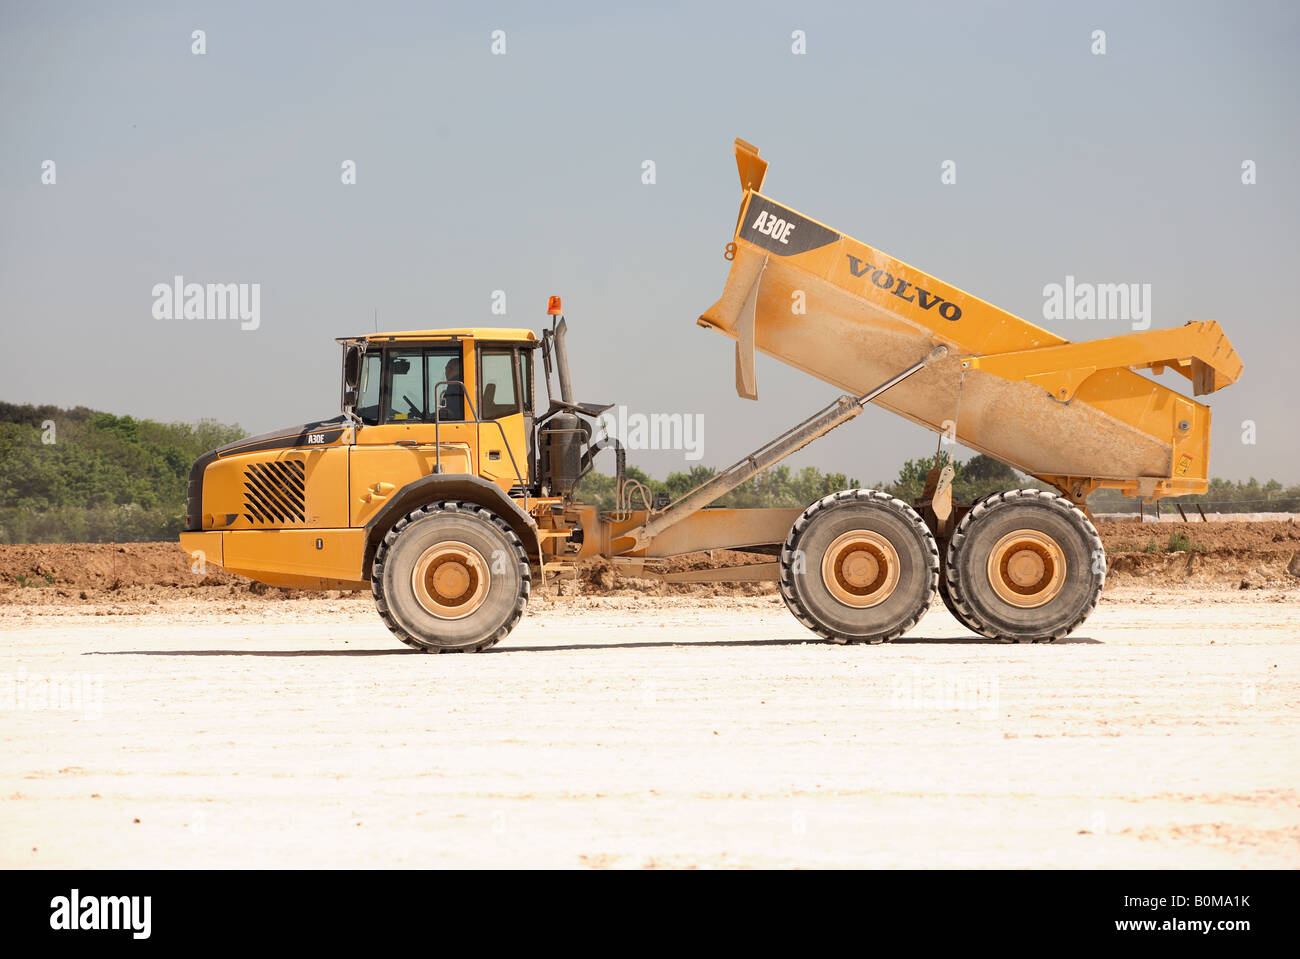 Large earth moving truck on building site - Stock Image